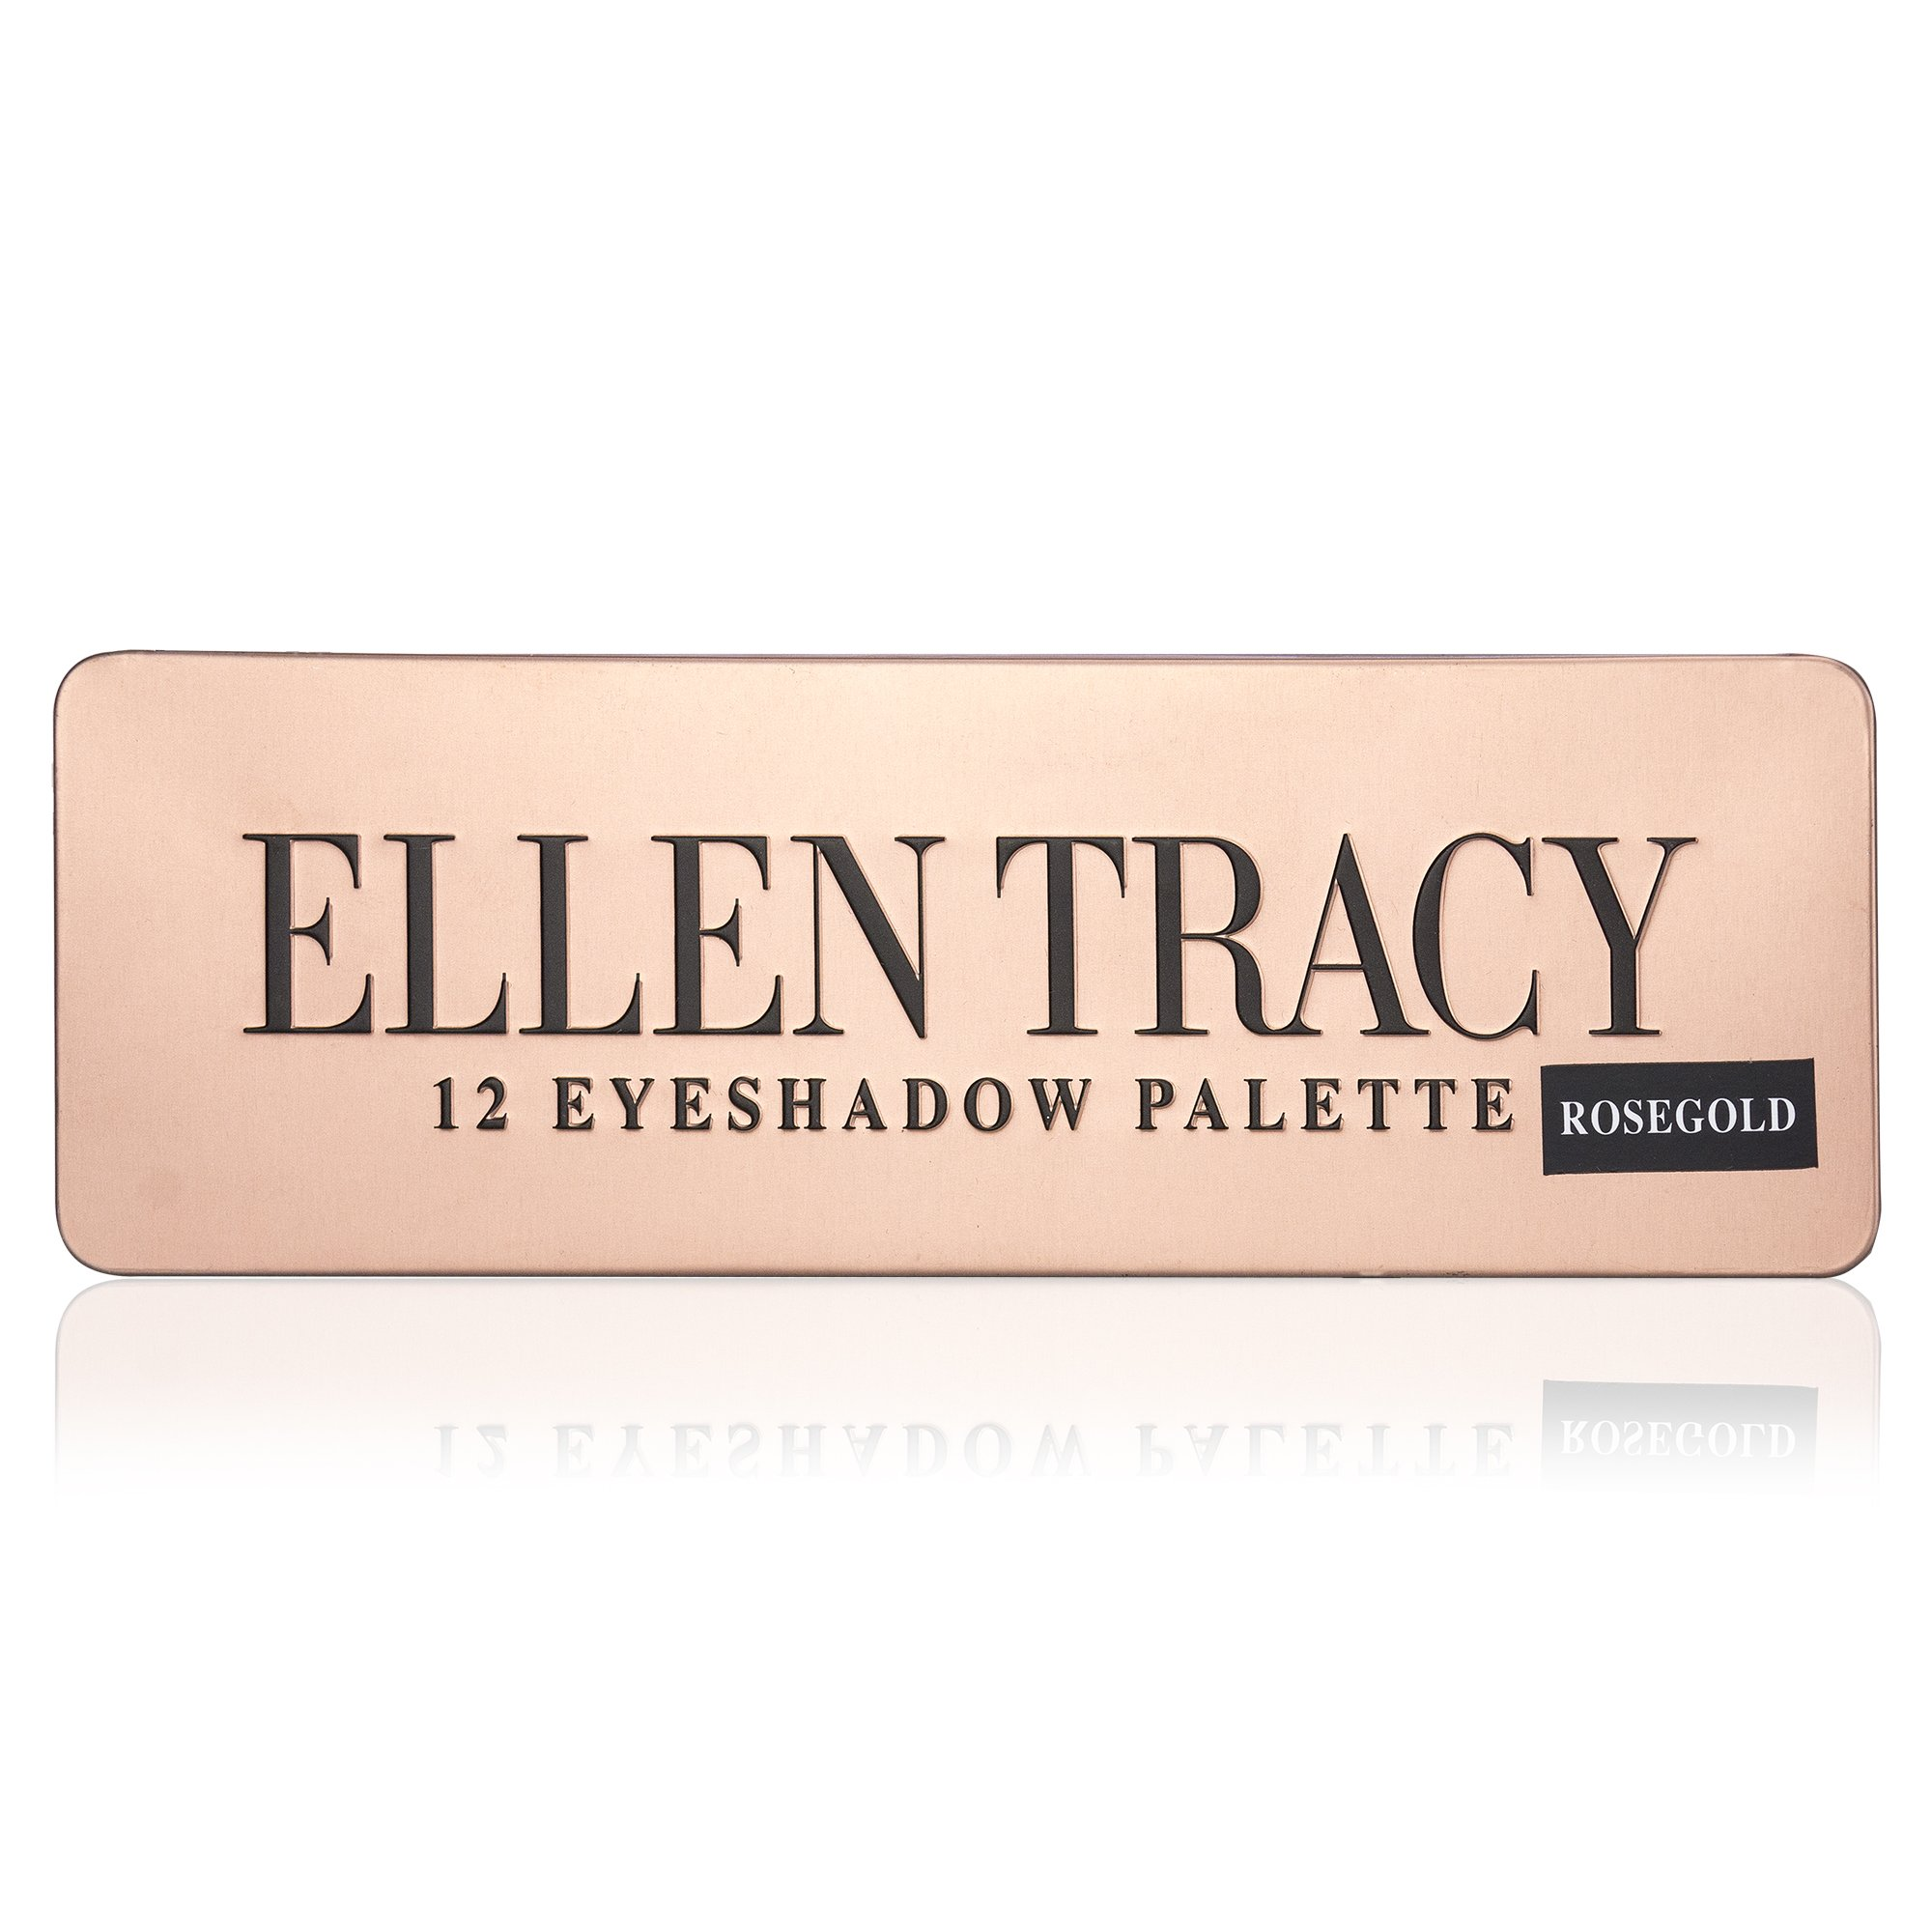 Ellen Tracy Luxurious 12-Well Eye Shadow Palette in Tin Box, Easy to Apply, Everyday Wear, for Women, Teen Girls, Rose Gold Colors, Blushed + Glowing + Romantic Look, with Eyeshadow Brush Included